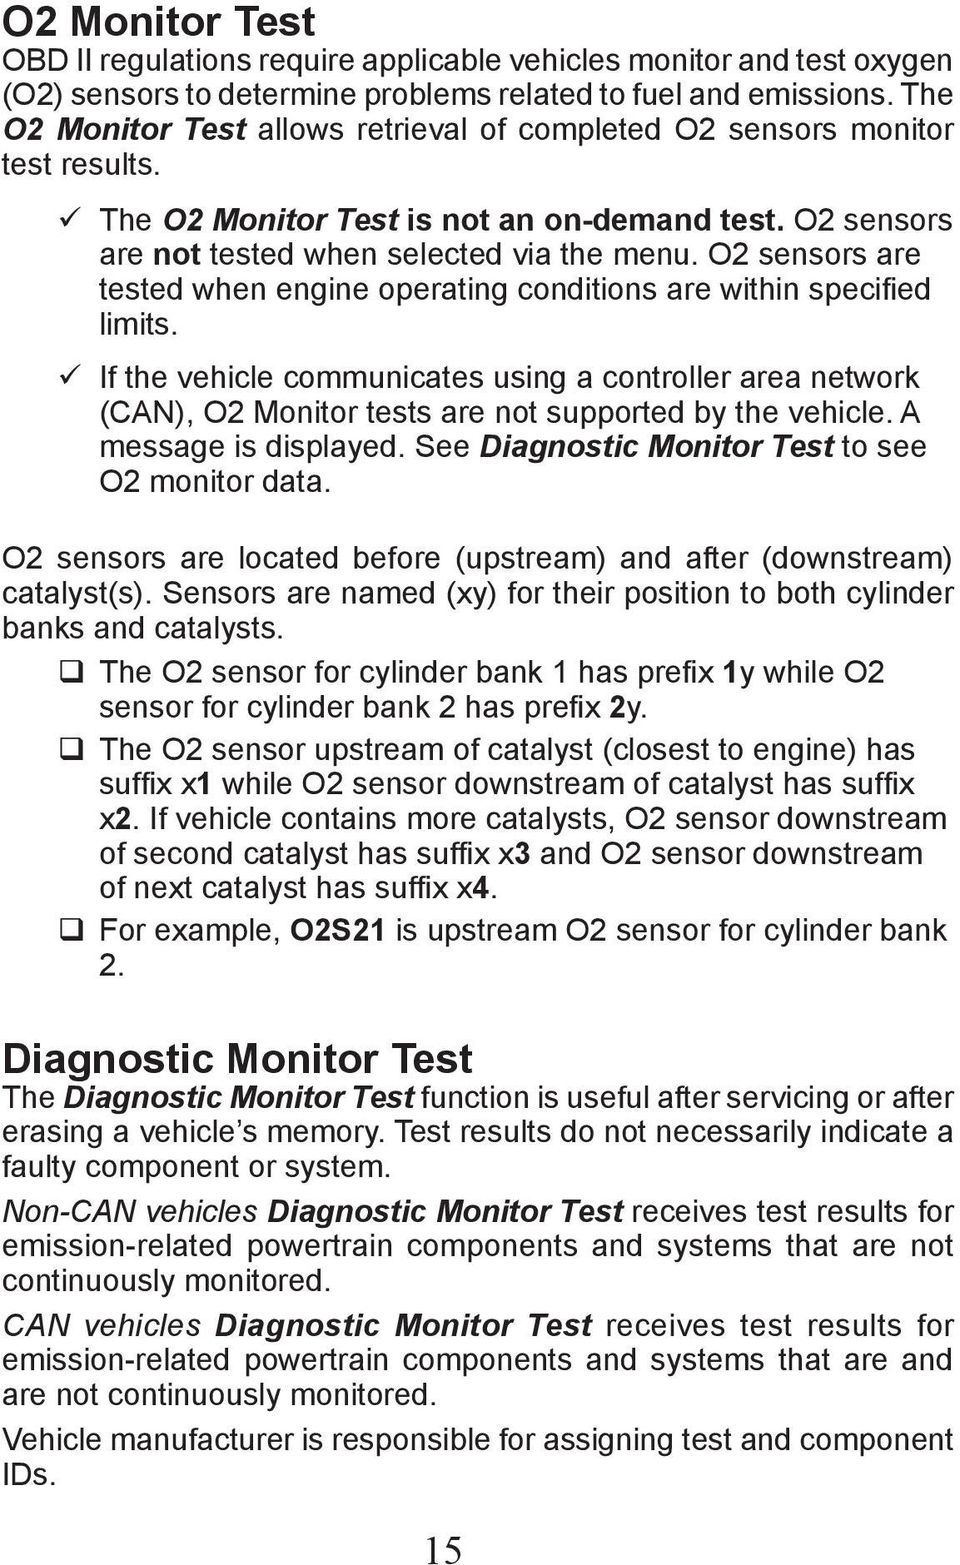 O2 sensors are tested when engine operating conditions are within specified limits.